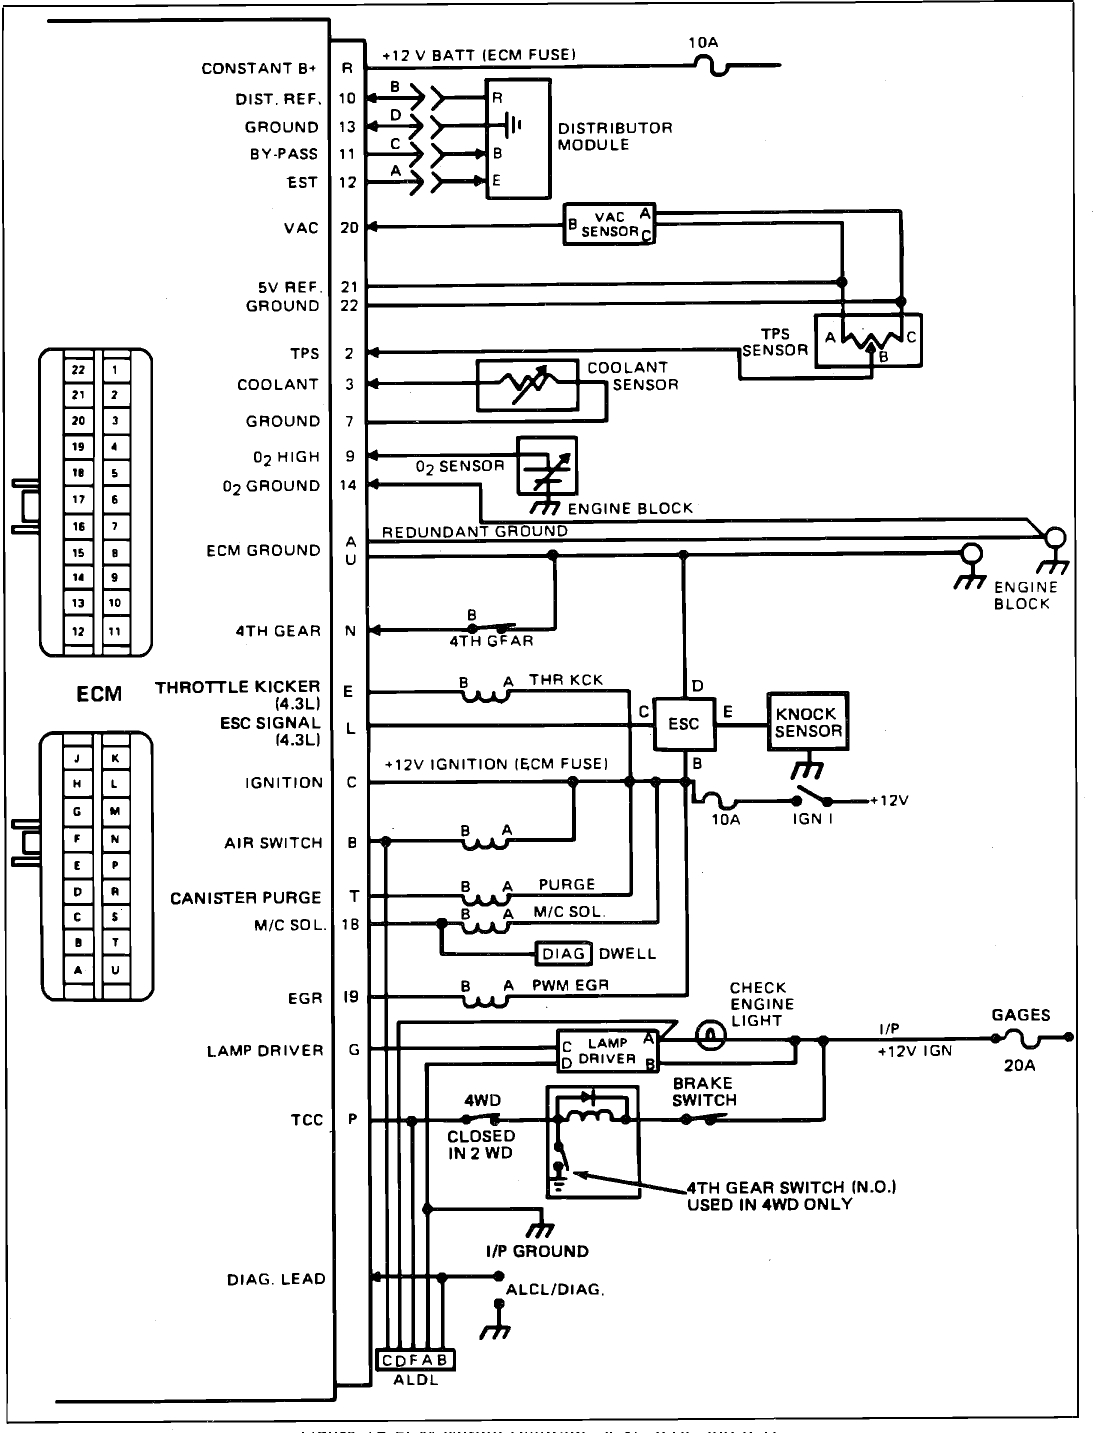 1985 chevy van fuse box diagram 31 wiring diagram images